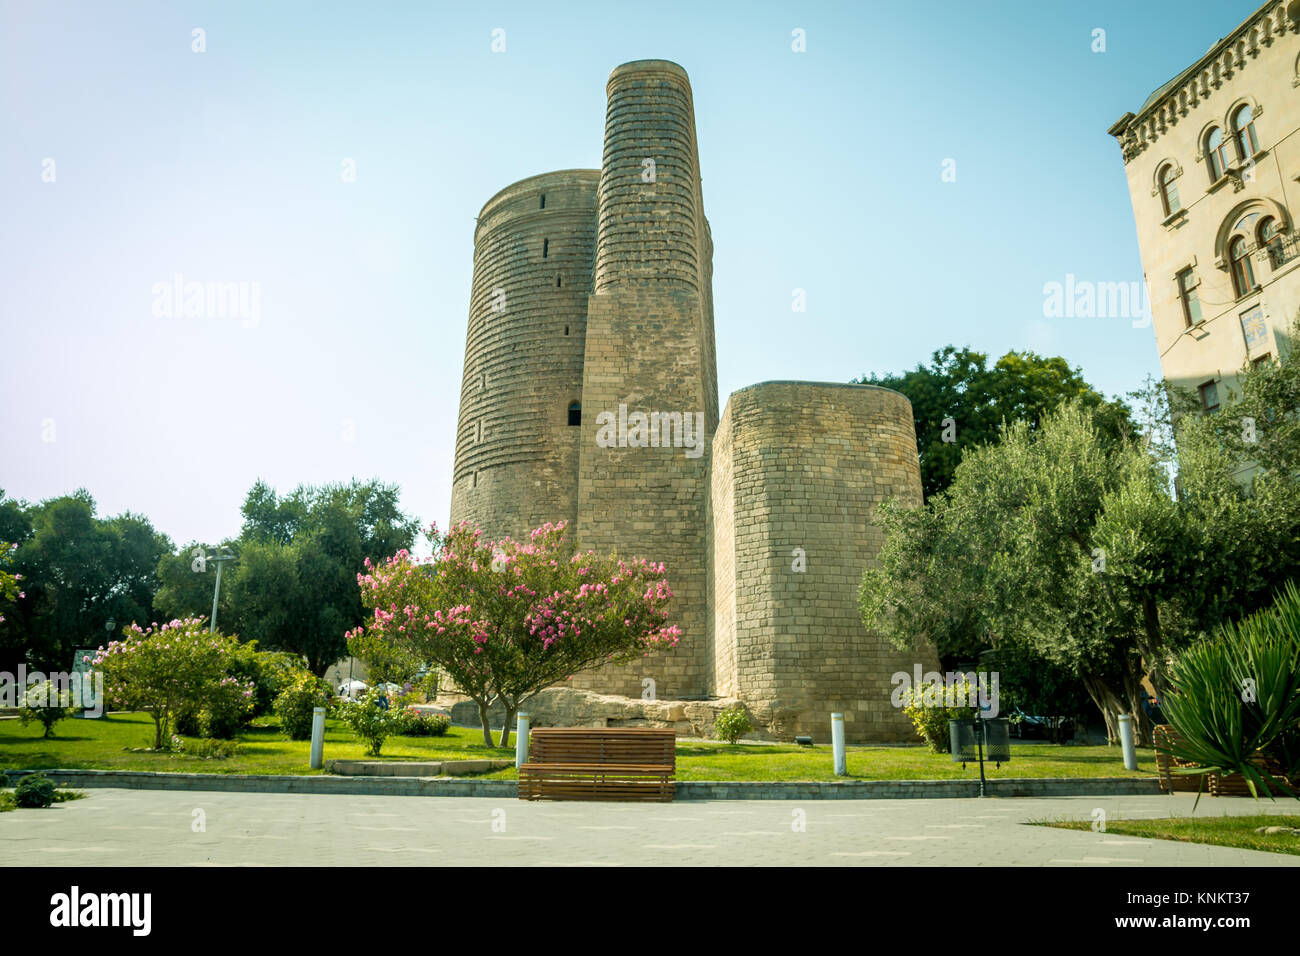 The Maiden Tower also known as Giz Galasi, located in the Old City in Baku, Azerbaijan. Maiden Tower was built in - Stock Image